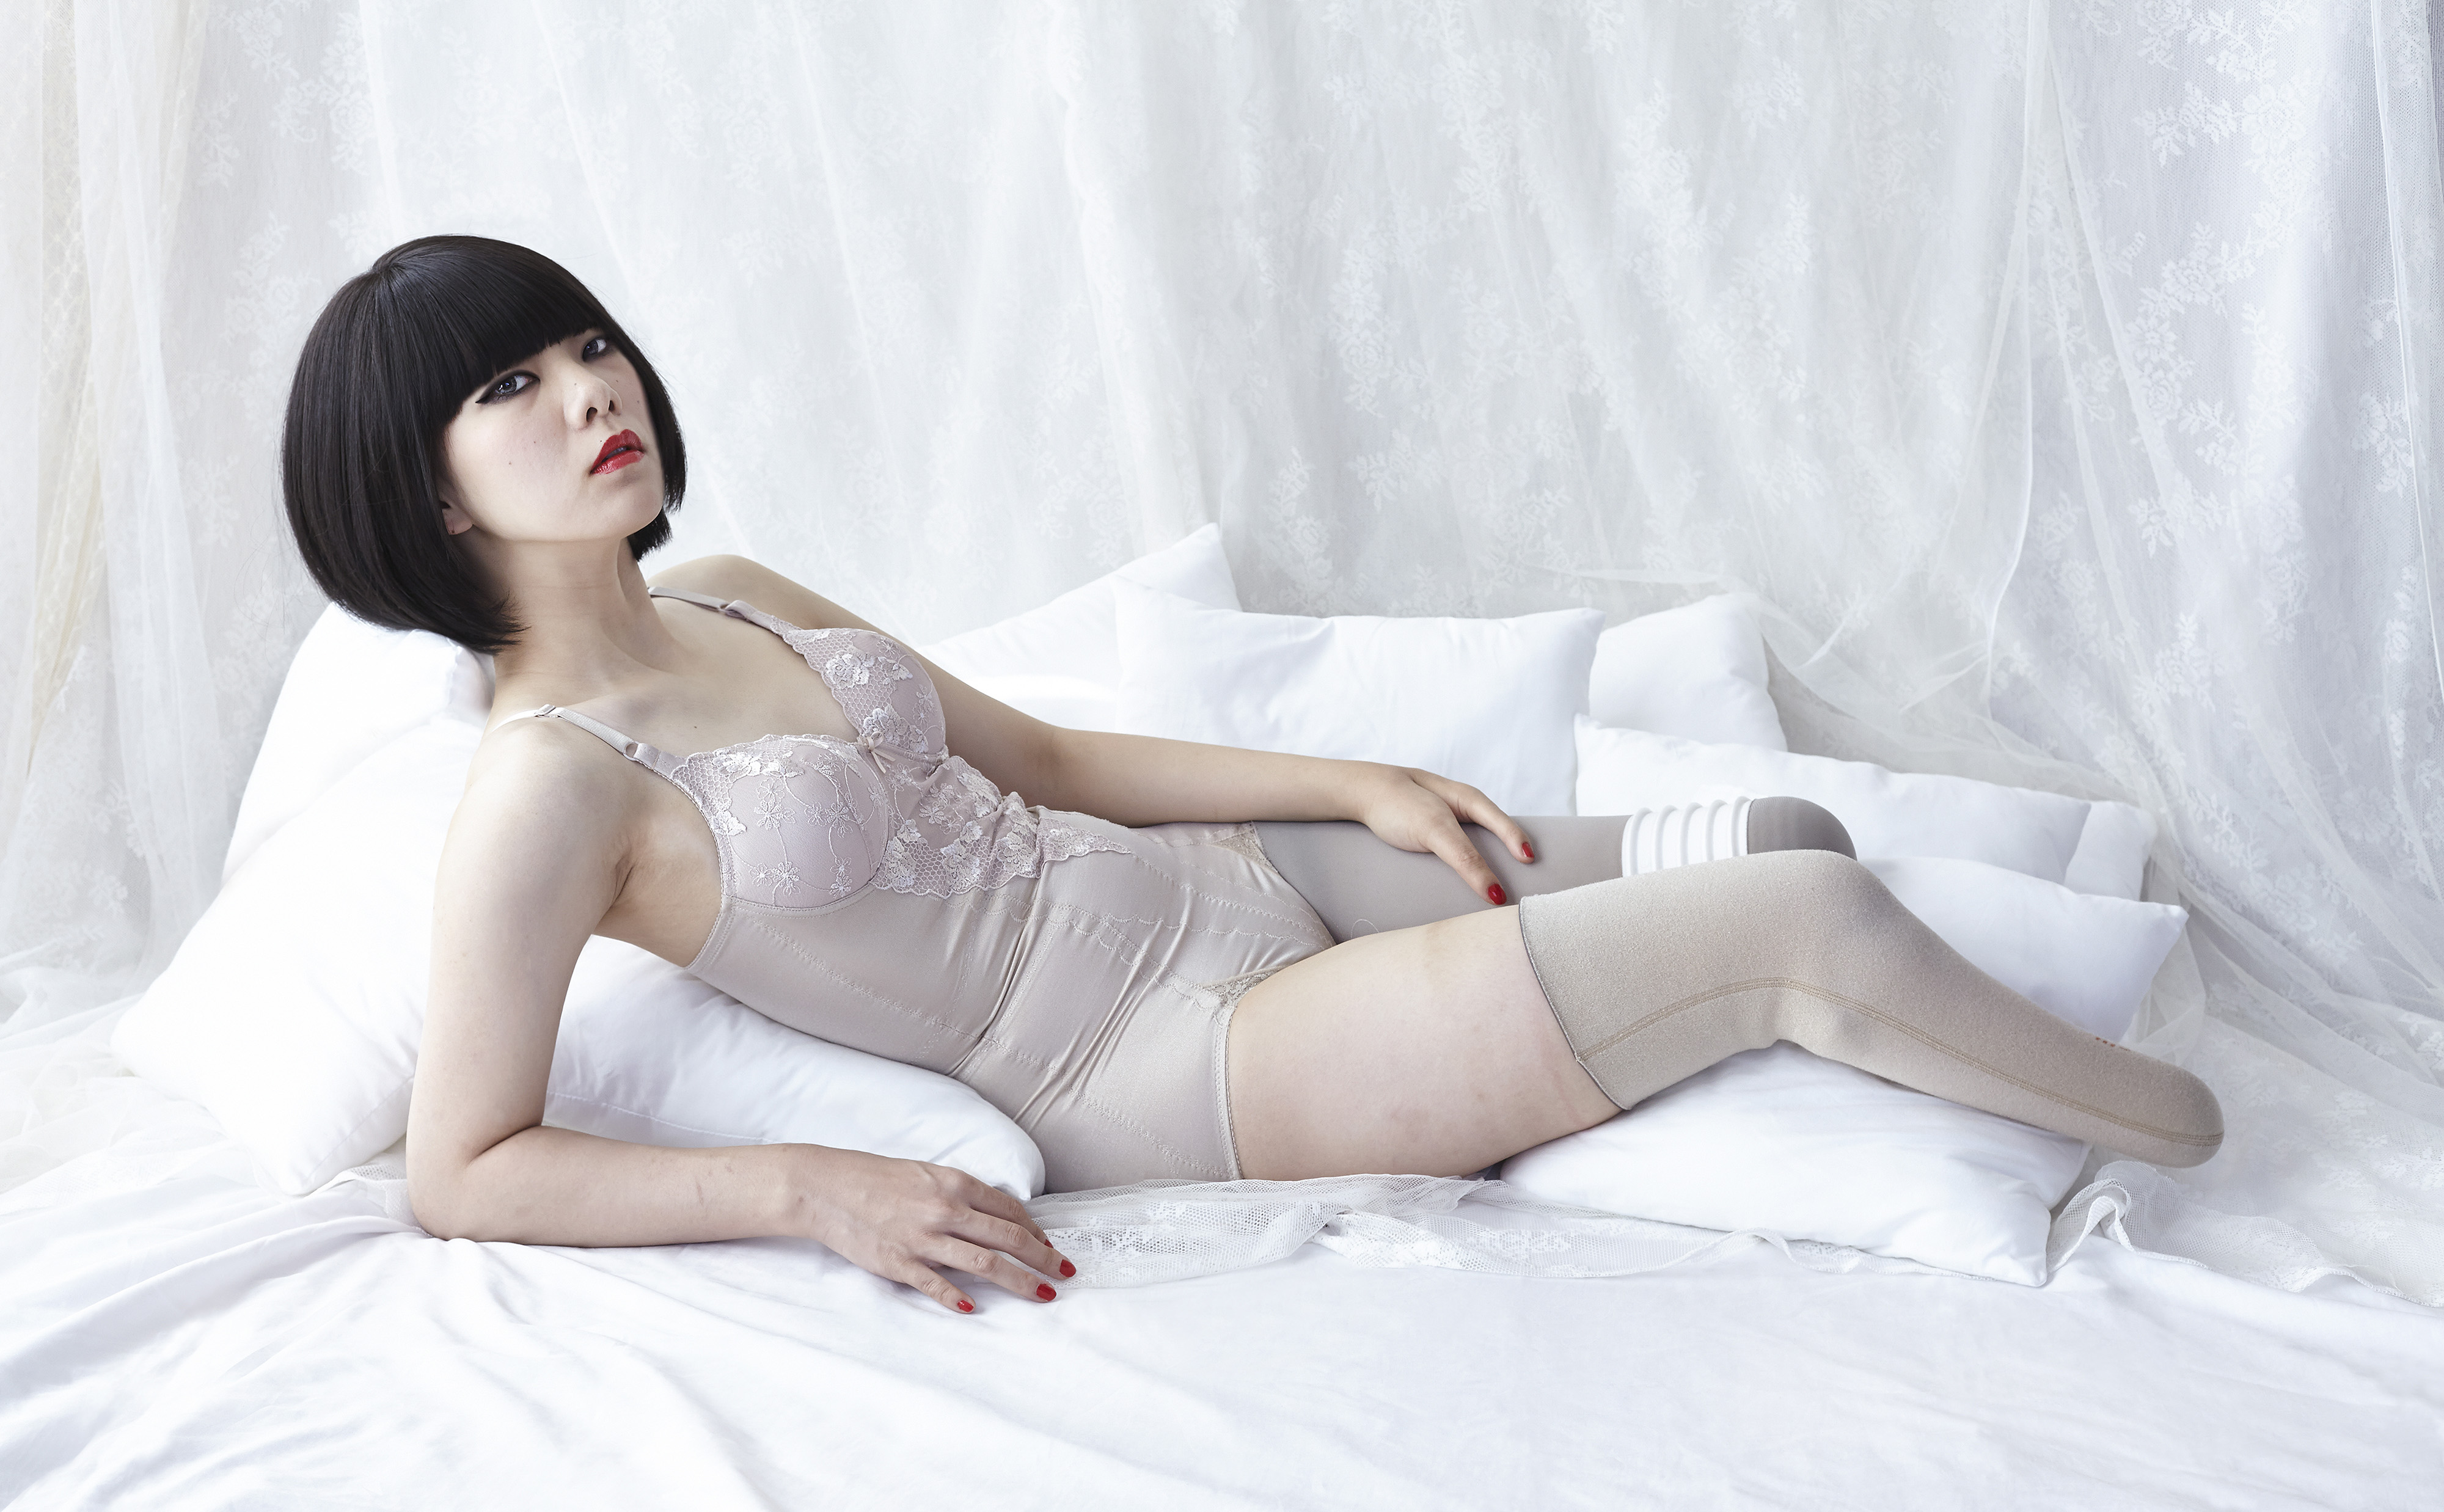 Mari Katayama, you're Mine #001, 2014. © Mari Katayama. Courtesy of rin art association